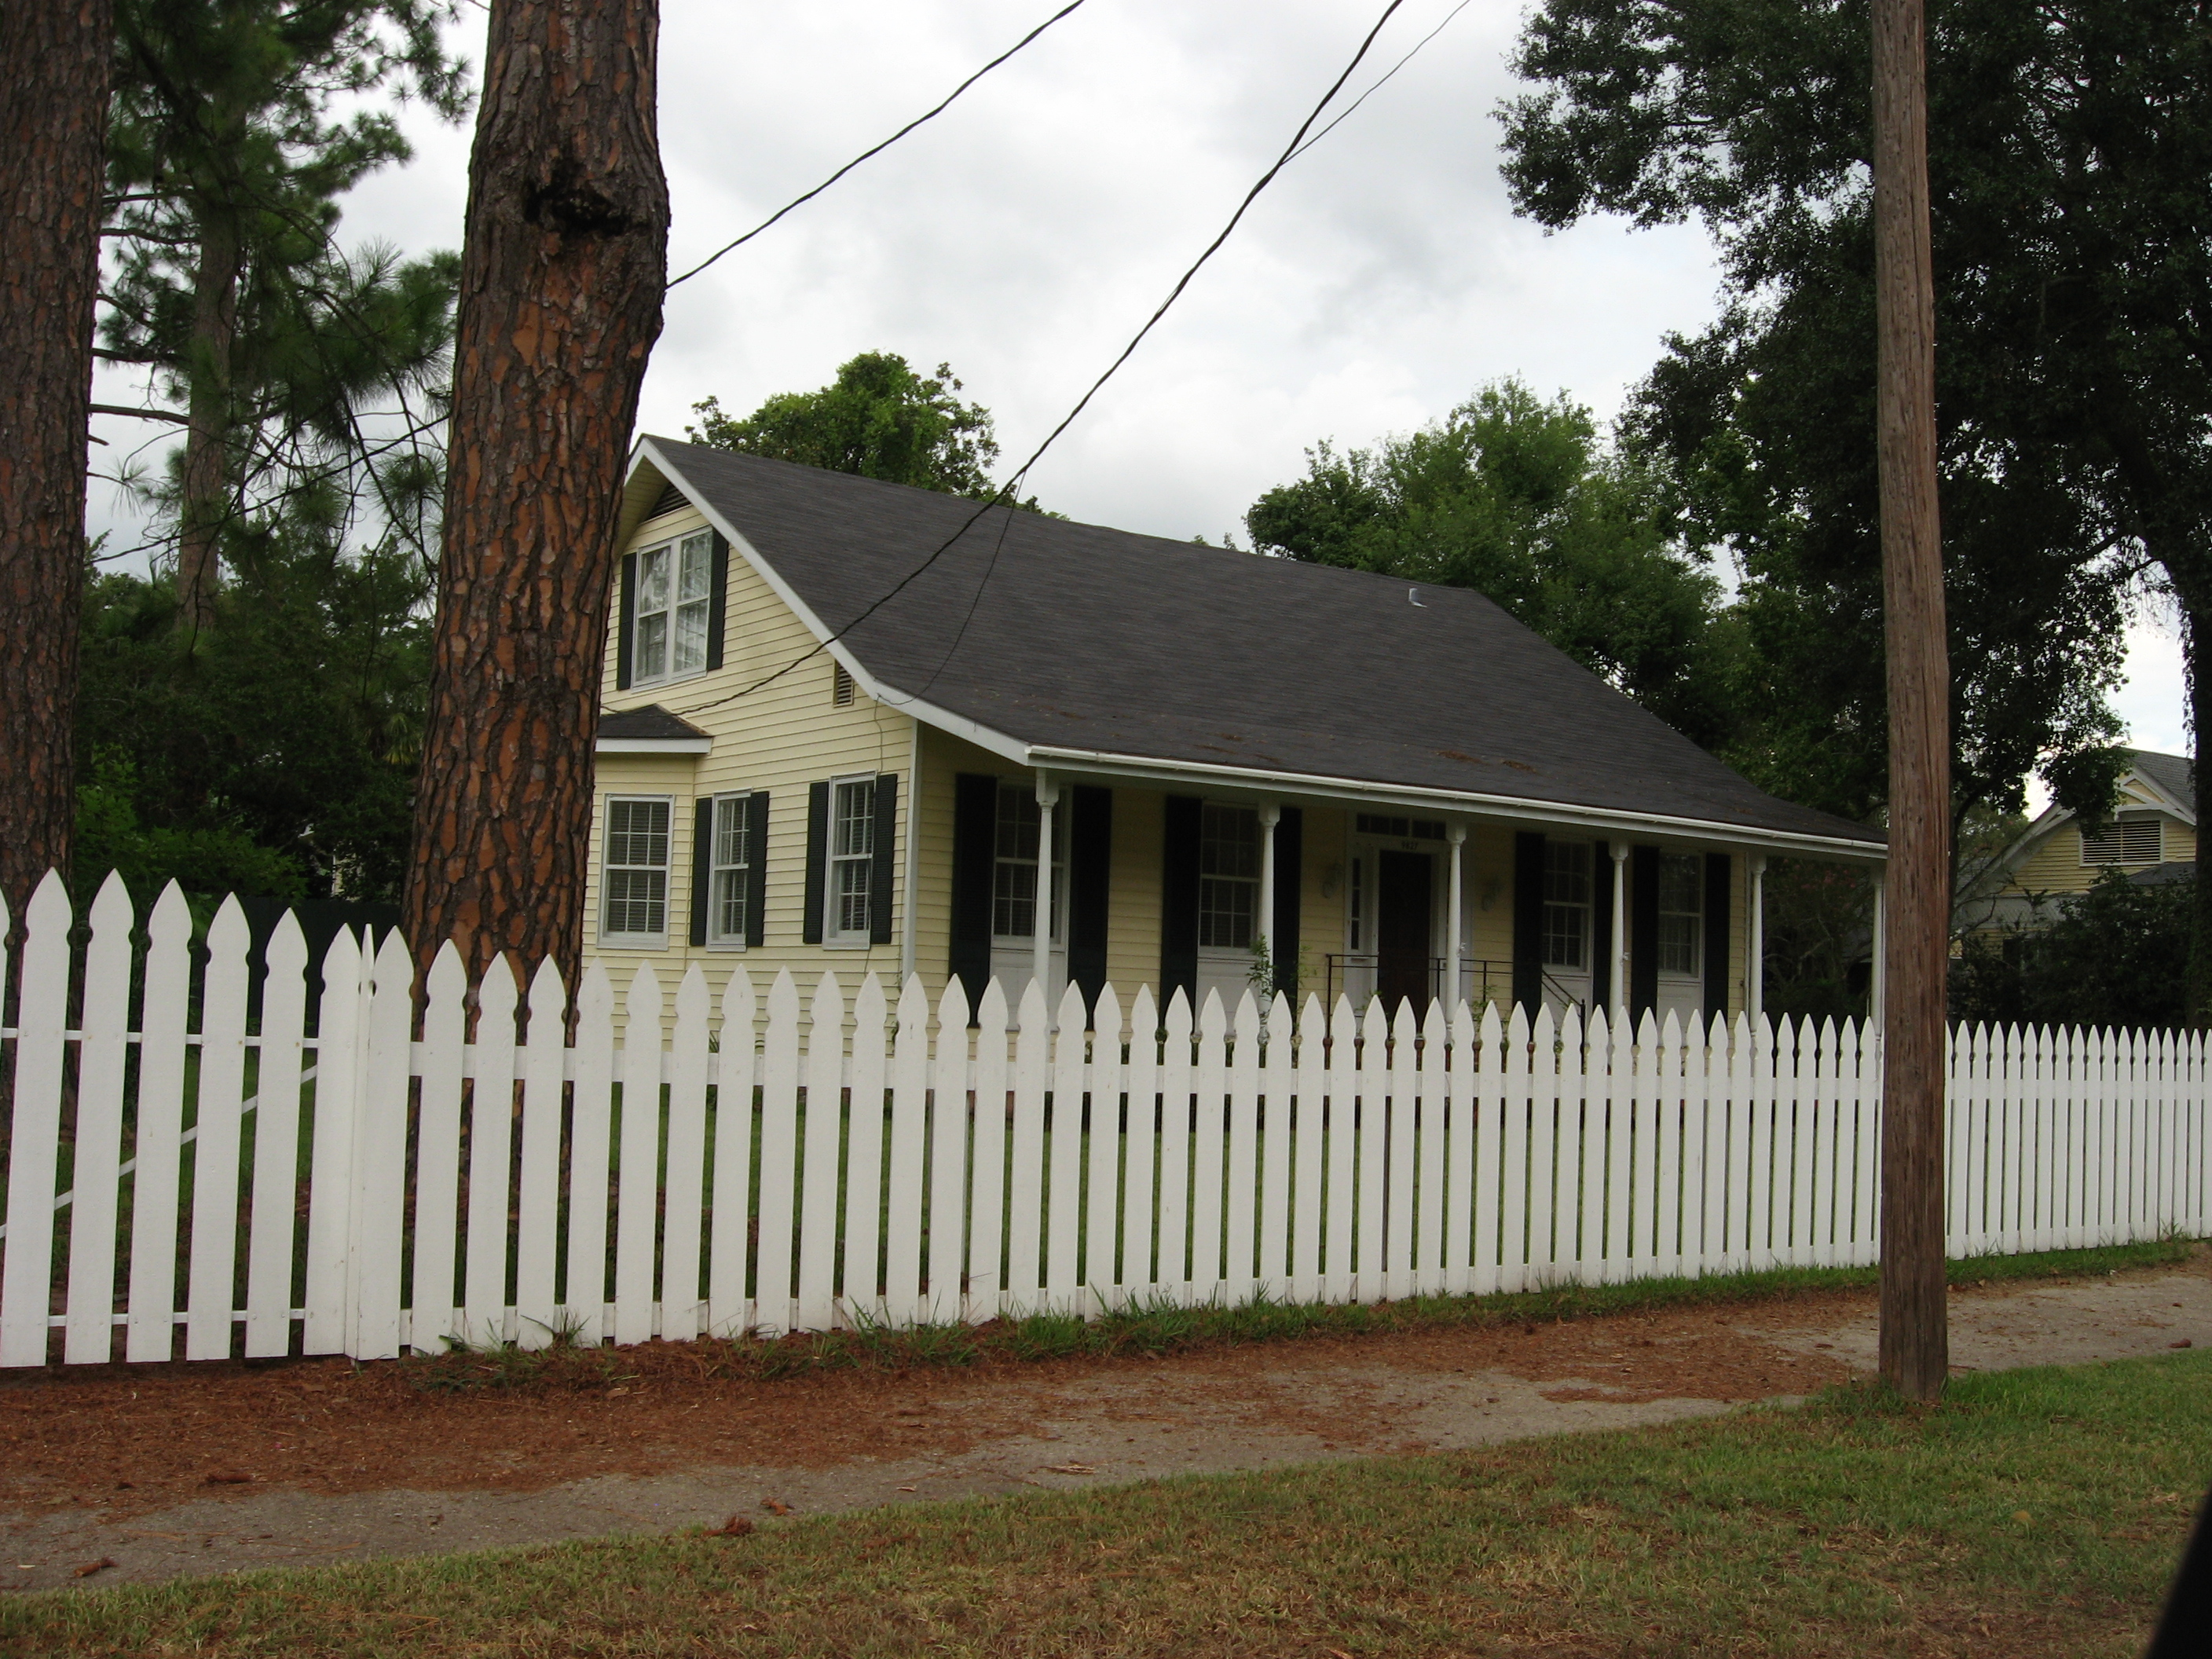 file st francisville louisiana yellow house white picket wikimedia commons. Black Bedroom Furniture Sets. Home Design Ideas